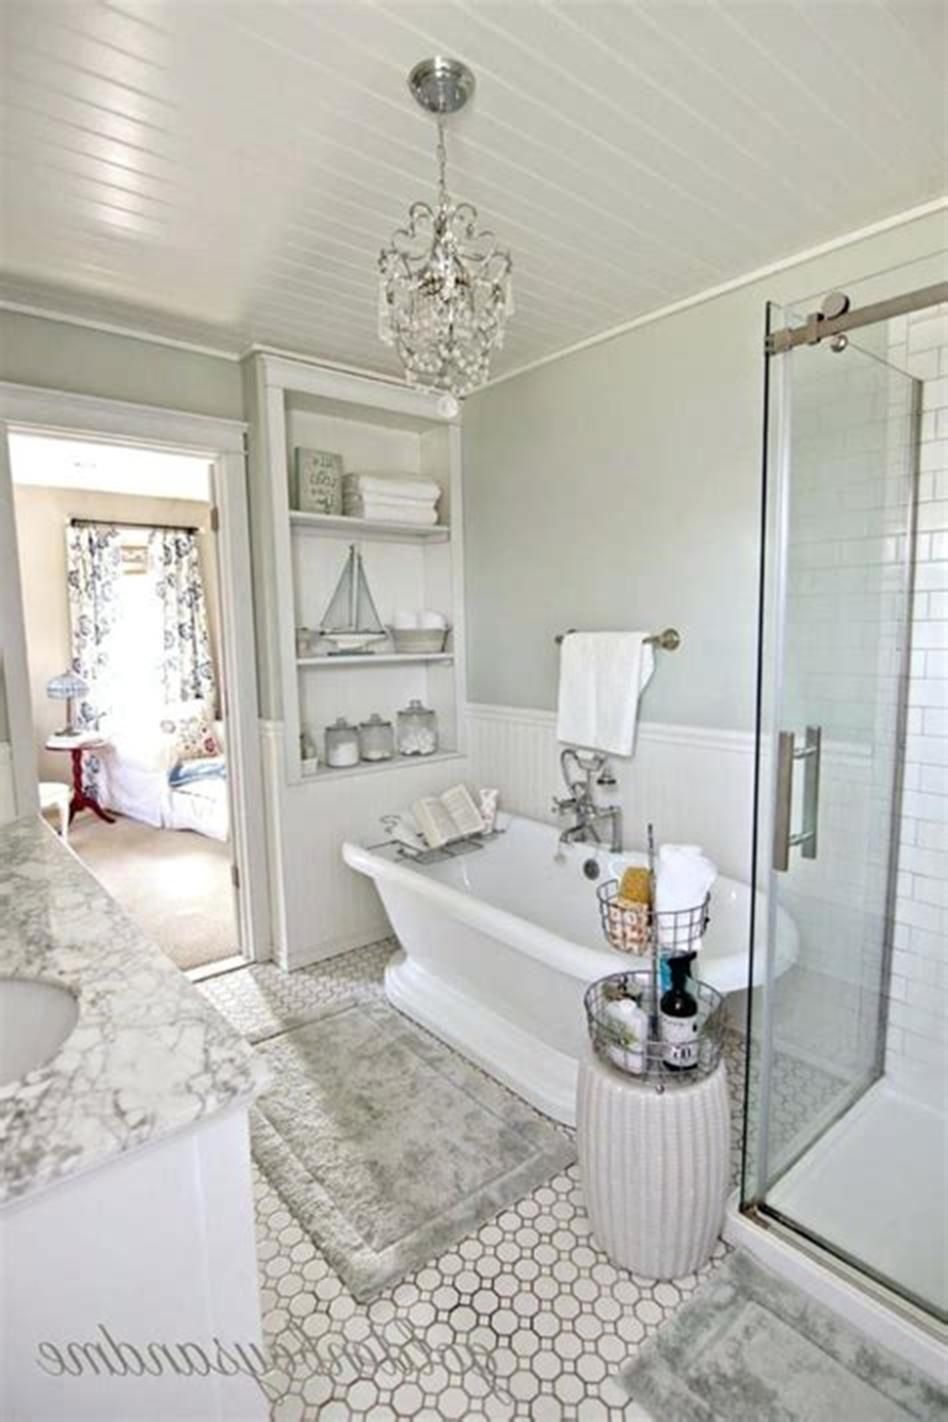 23 Perfect Small Master Bathroom Remodel Ideas to Inspire ...